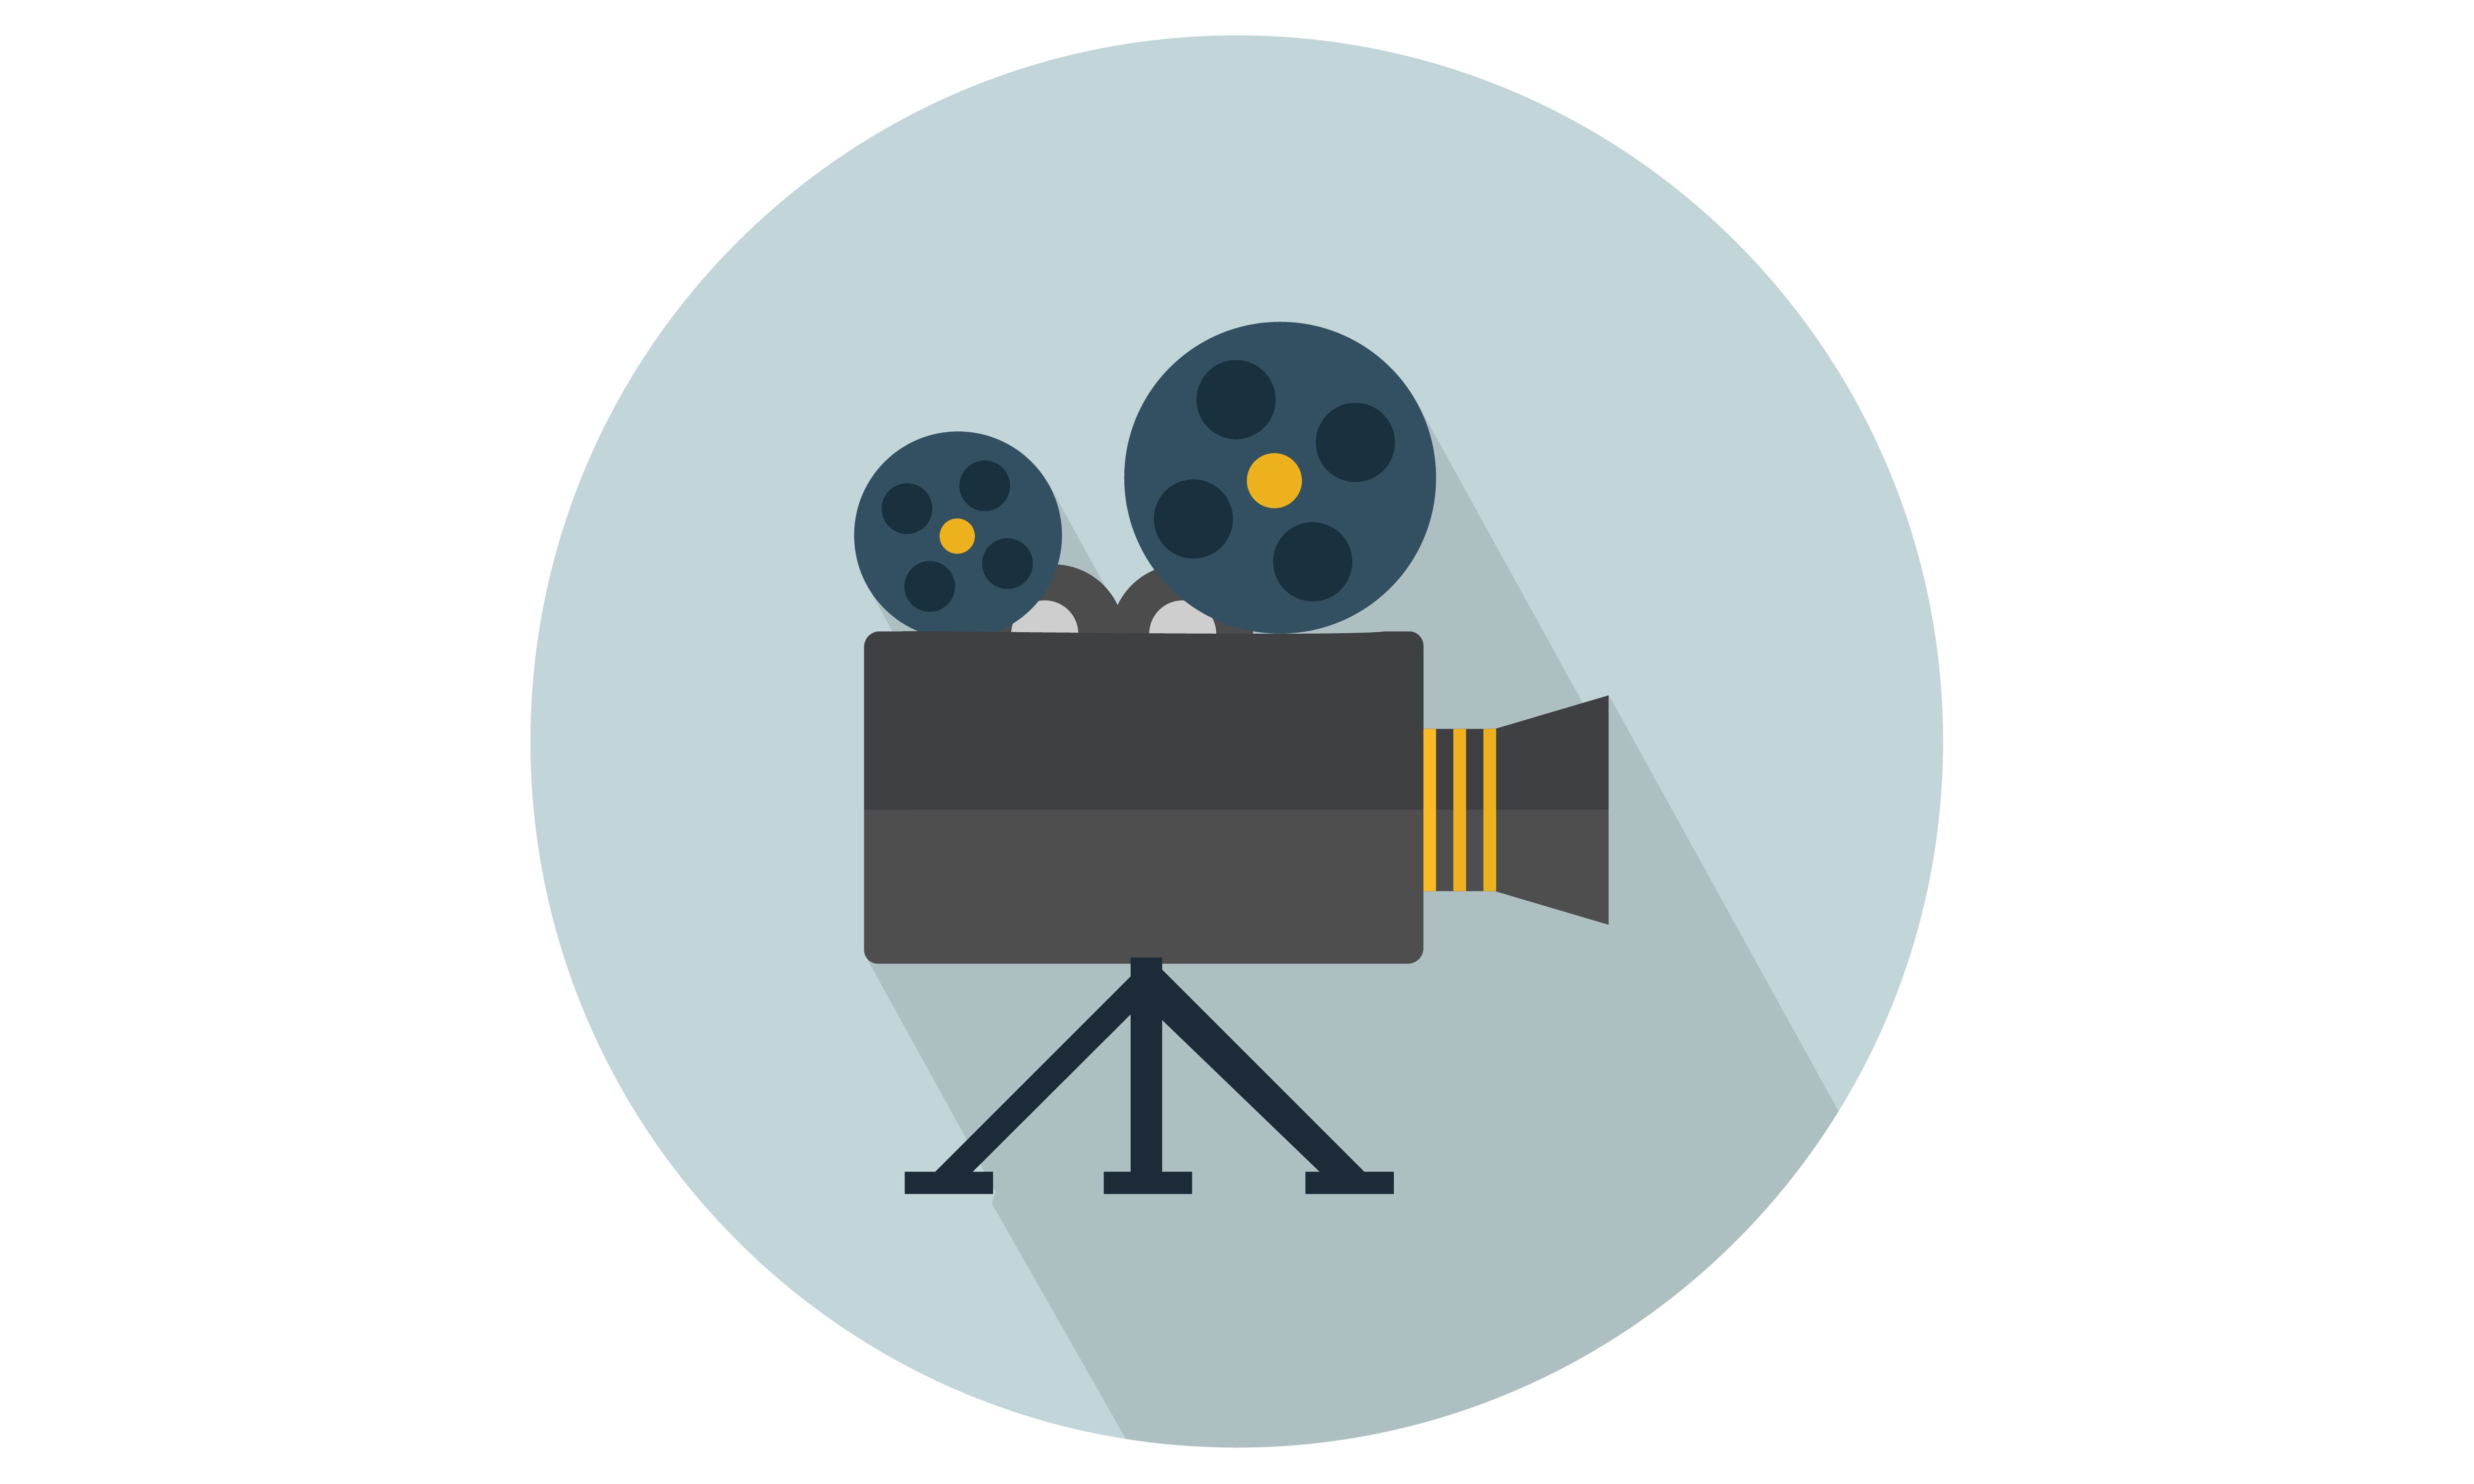 Camera with Stand Vector Illustration Icon. From Our